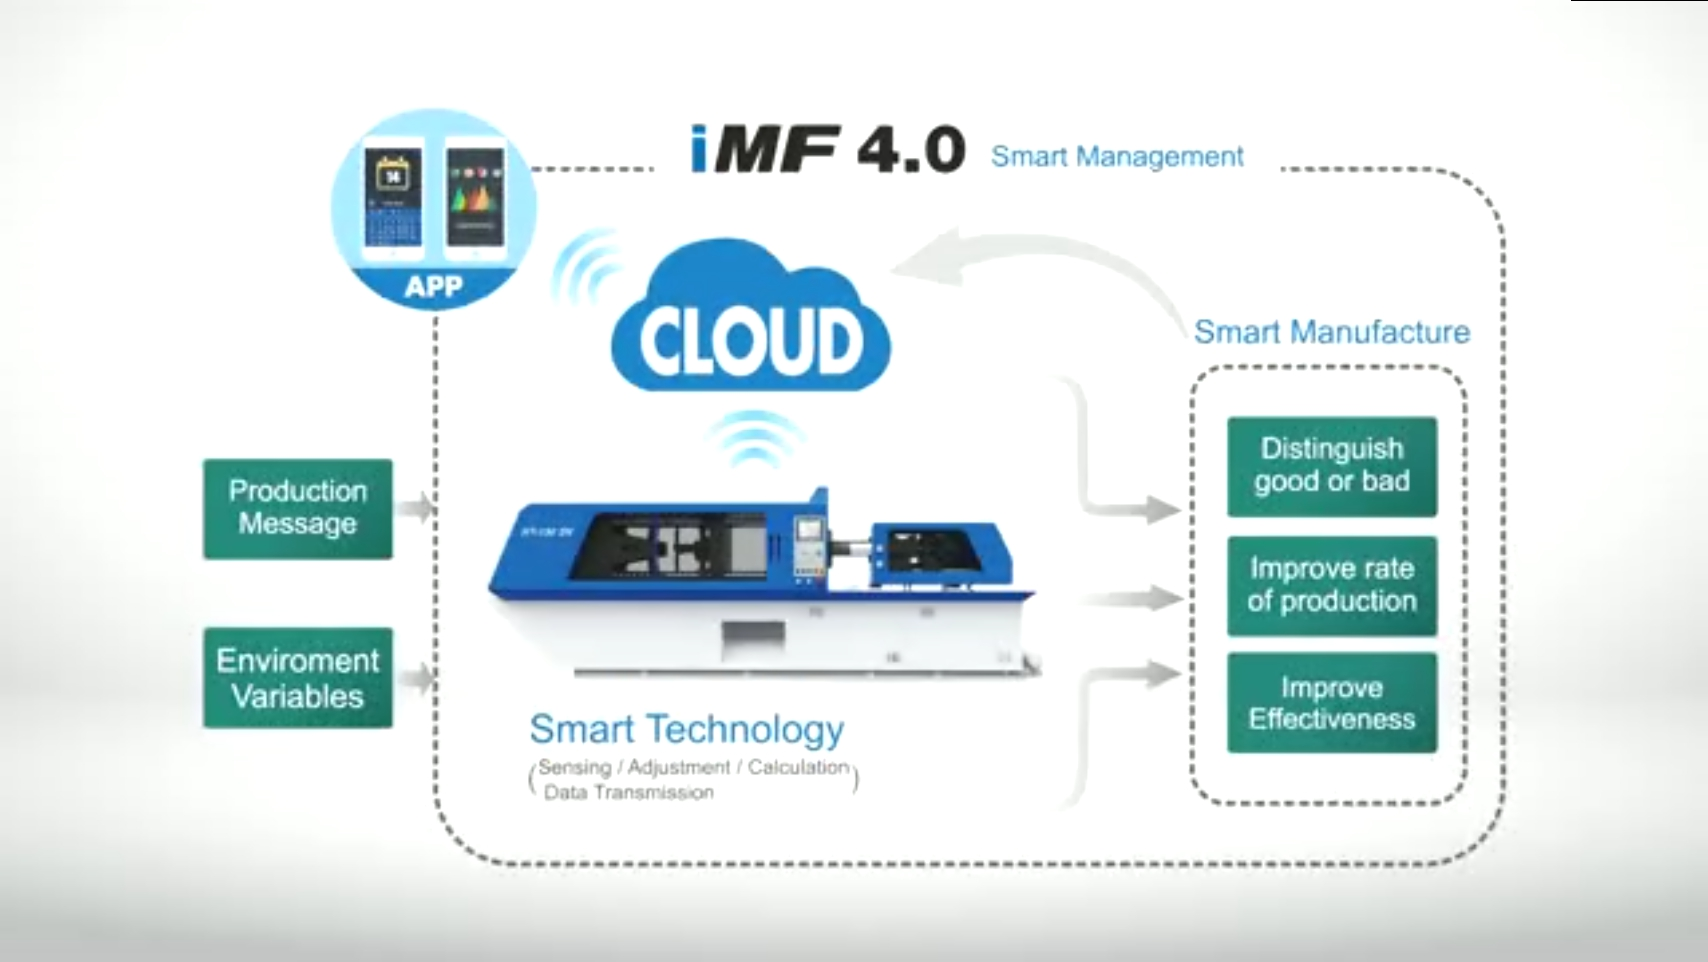 iMF4.0 Intelligent ManuFactory